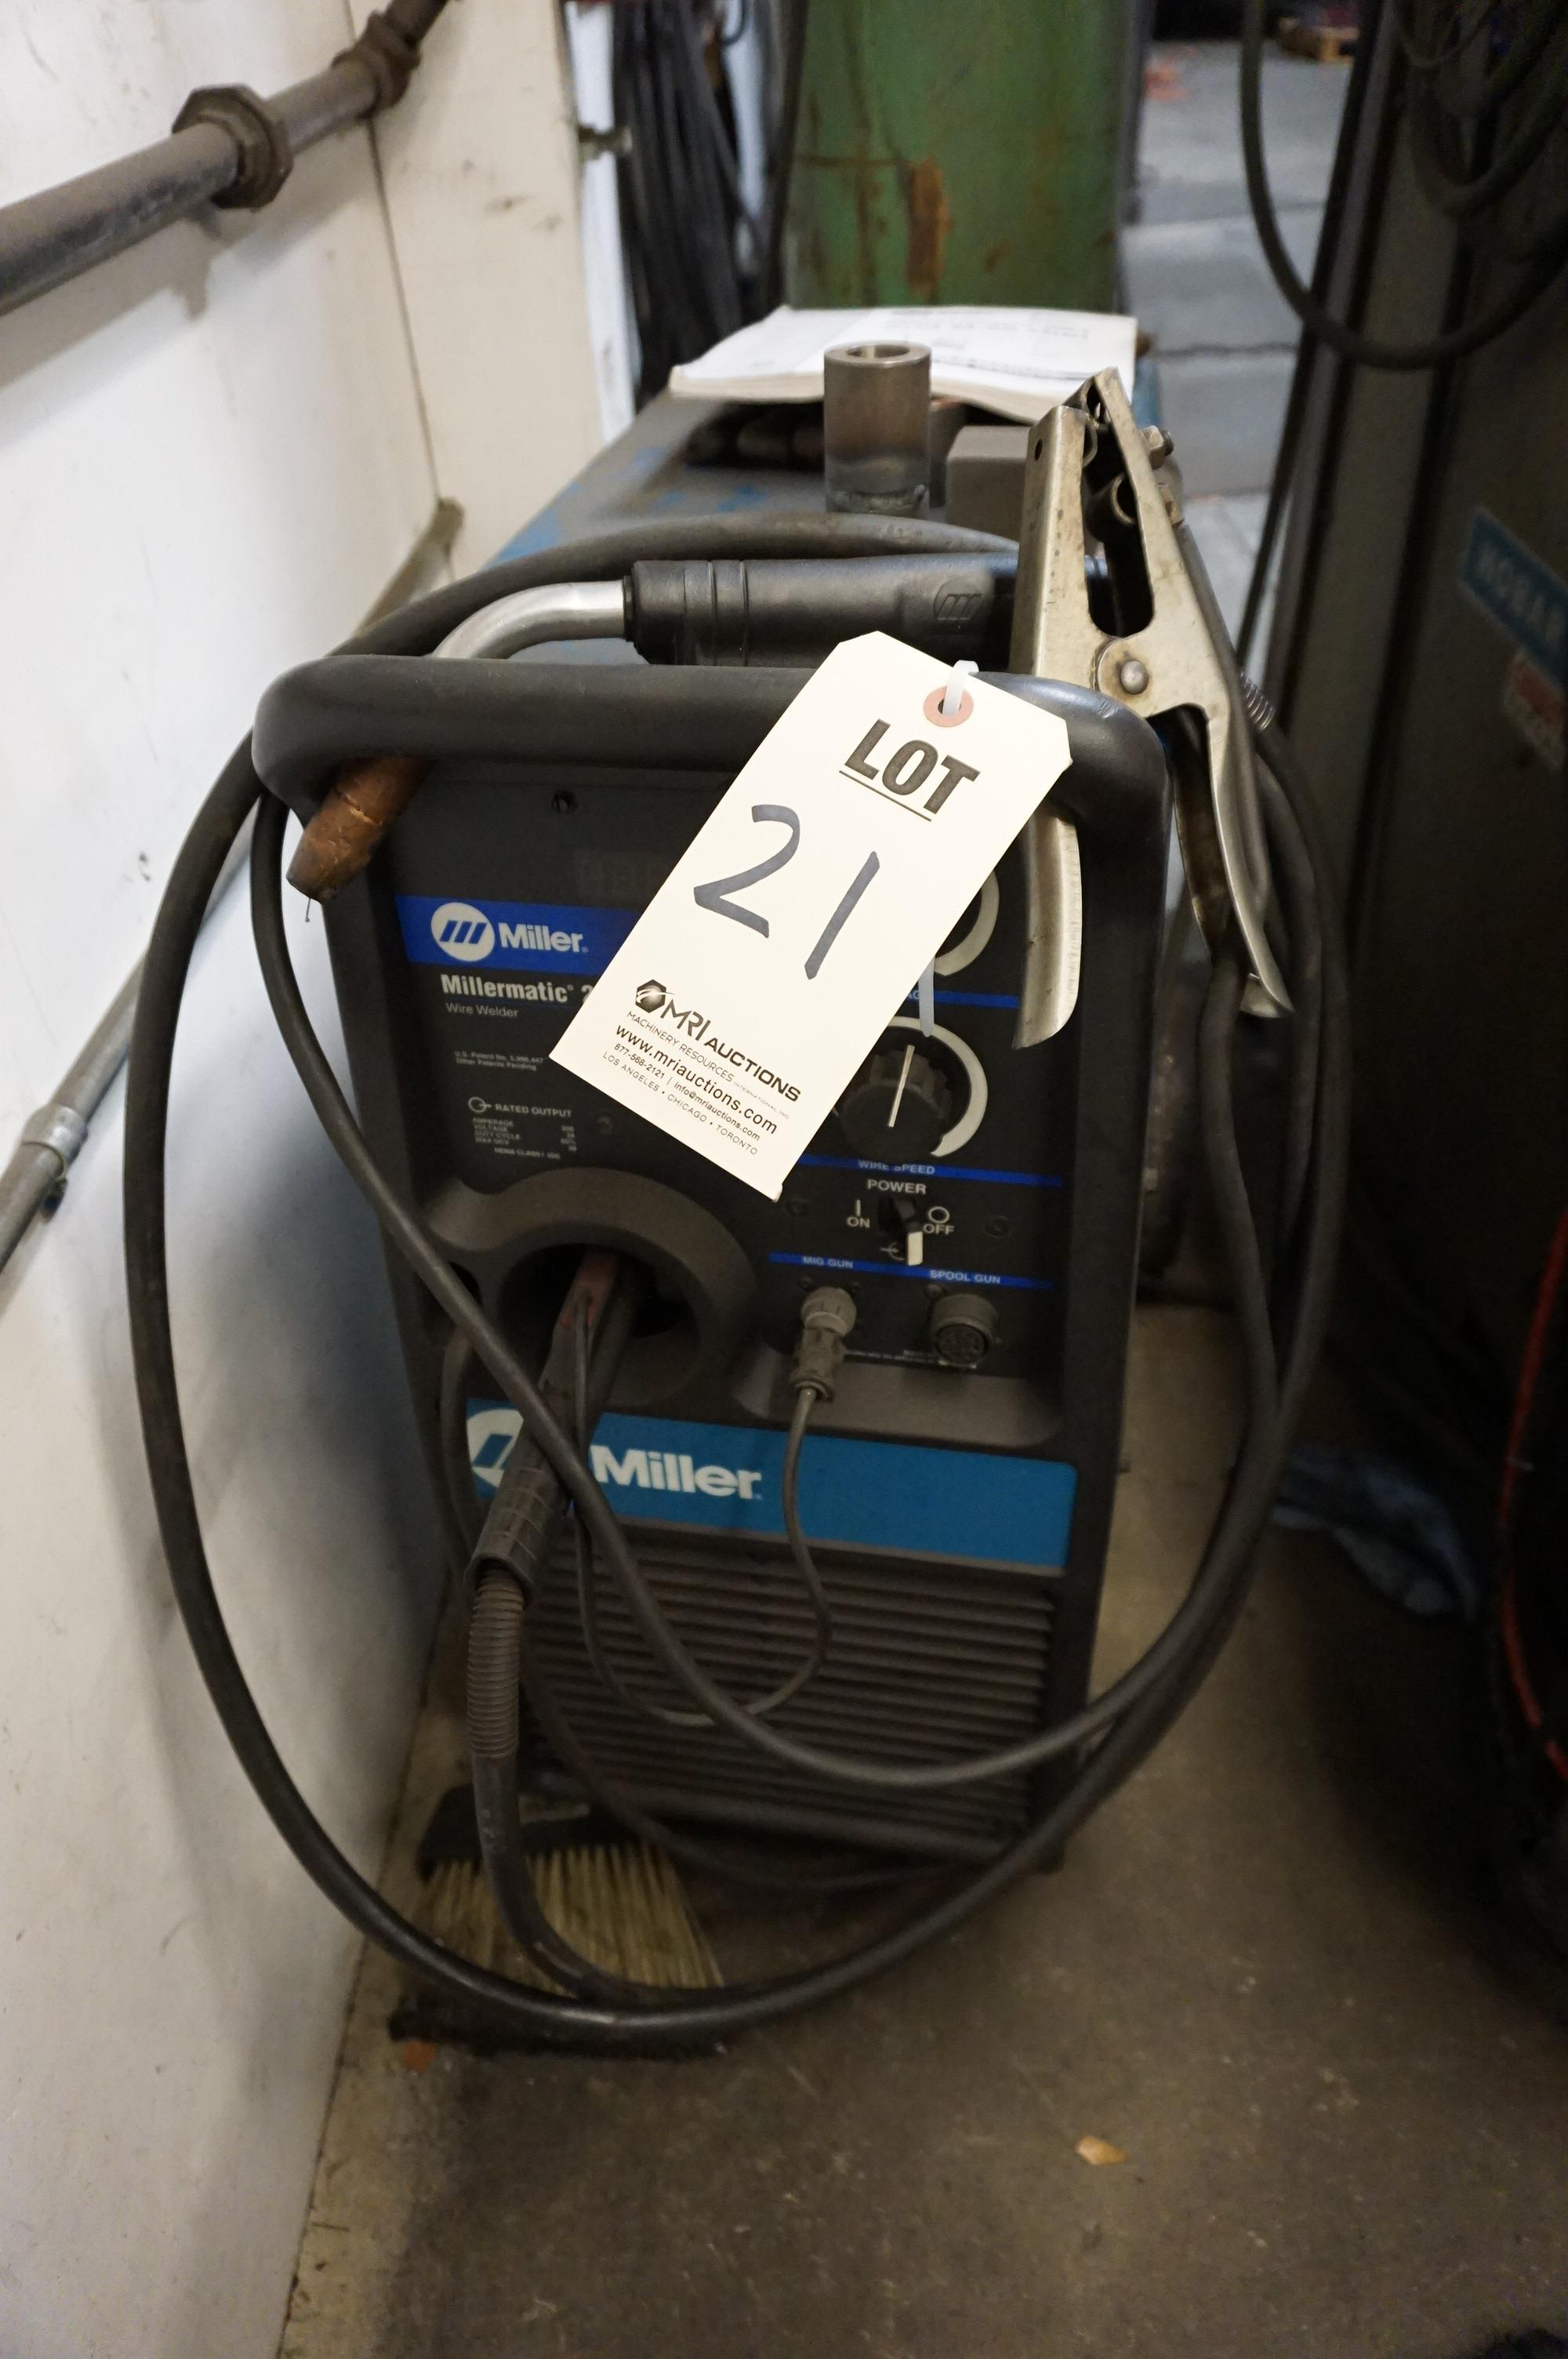 MILLER MILLERMATIC 251 WIRE WELDER WITH CABLES AND NOZZLES